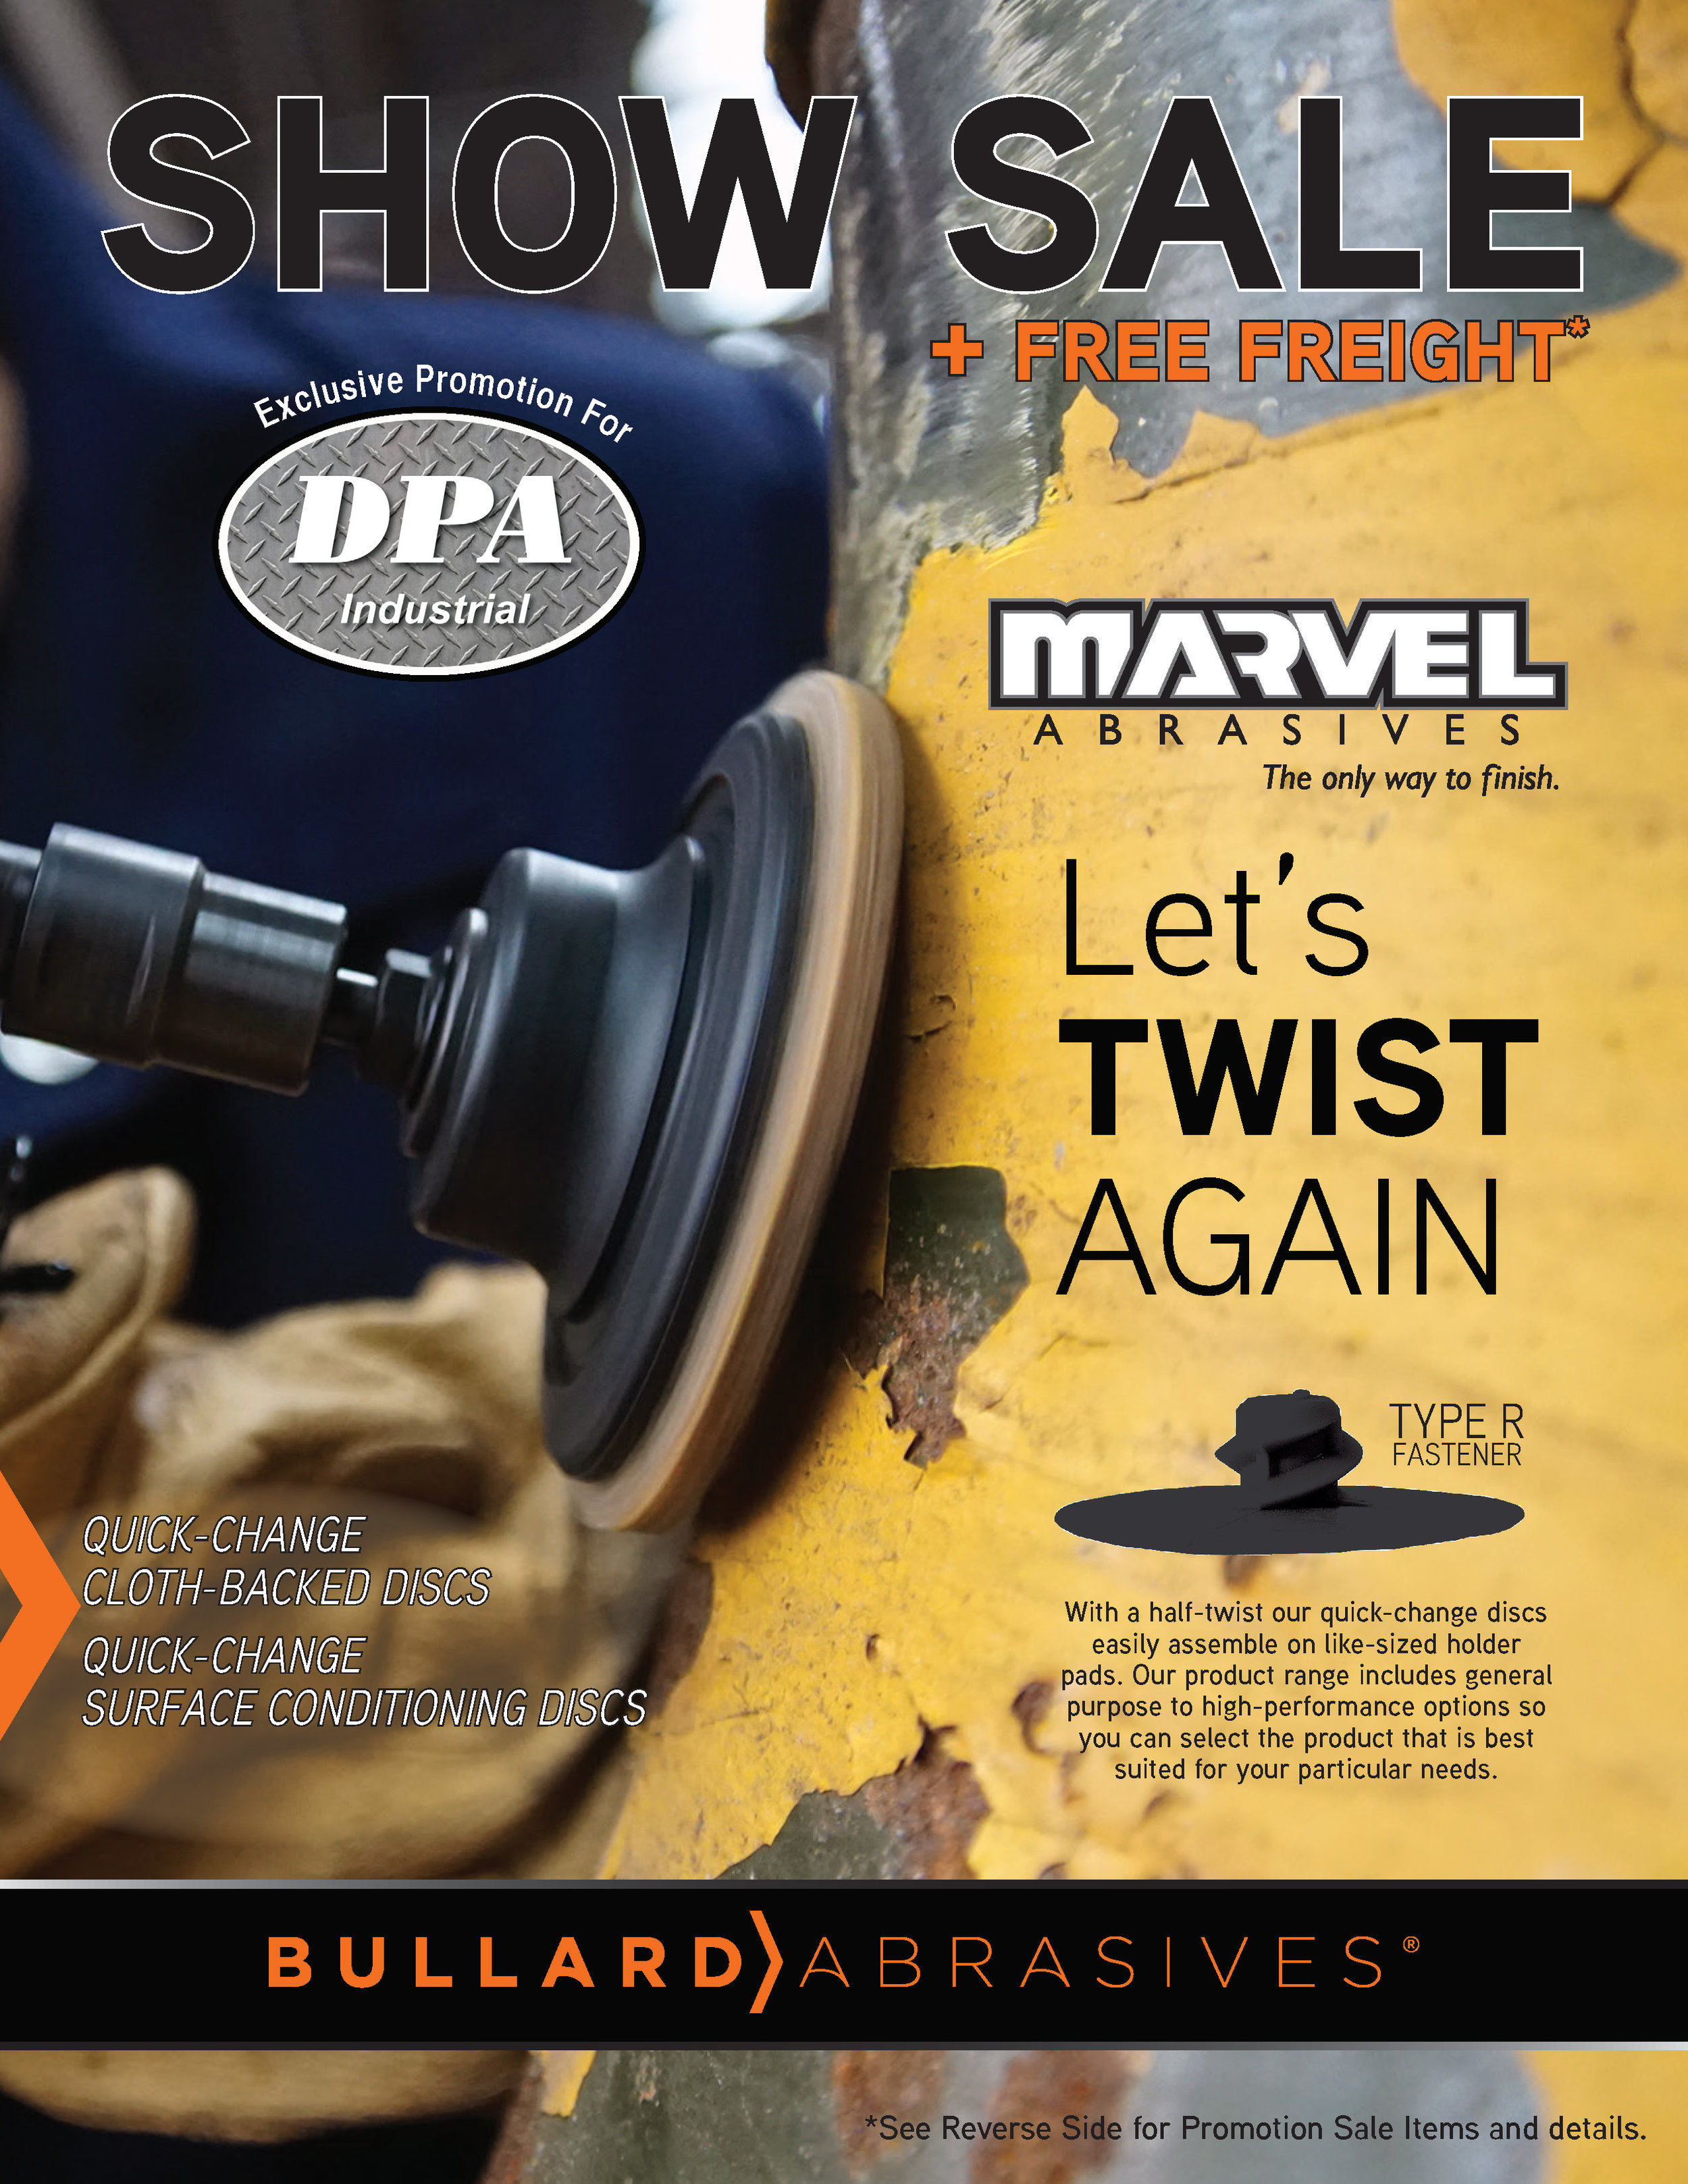 Let's TWIST AGAIN - EXCLUSIVE PROMOTION FOR DPA INDUSTRIALApril 17, 2019 through June 21, 2019CODE: SHOW